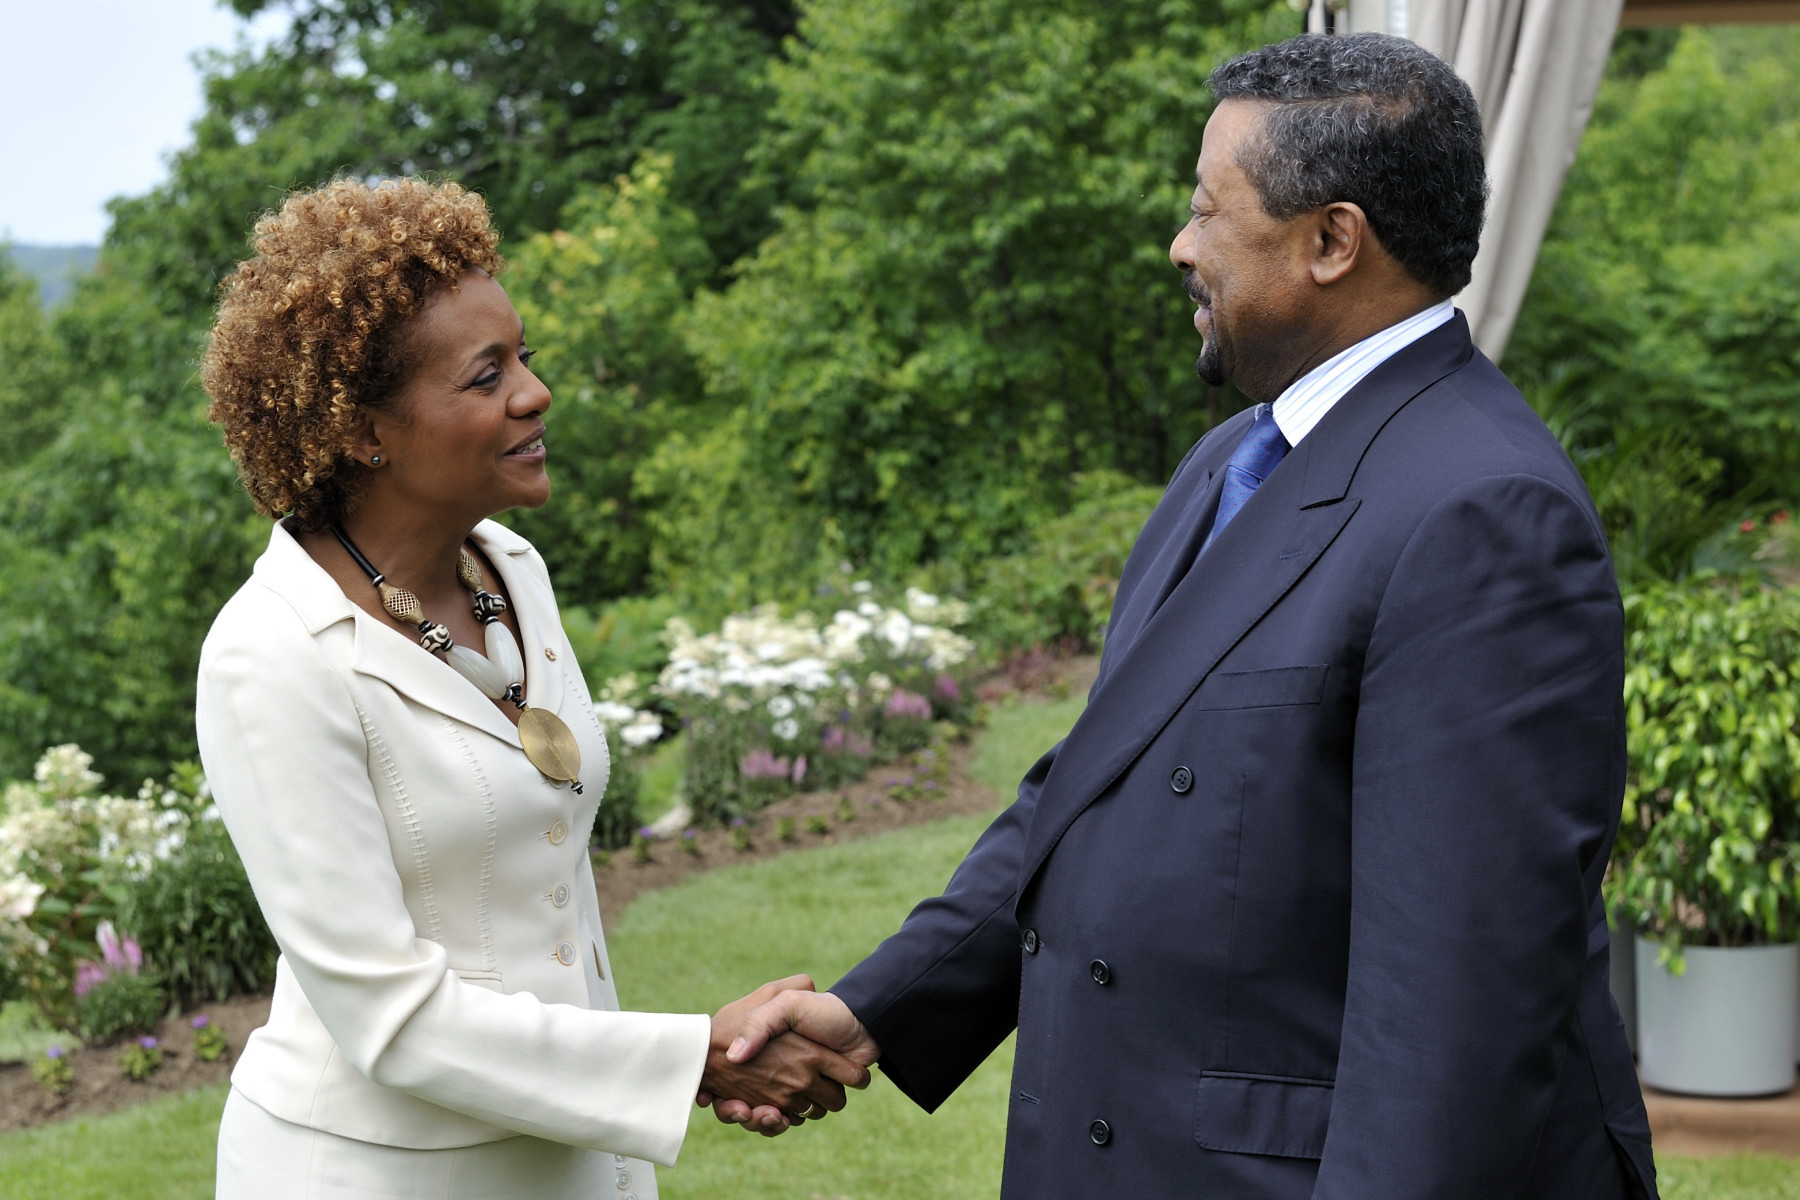 His Excellency Dr. Jean Ping, Chairperson of the African Union Commission.